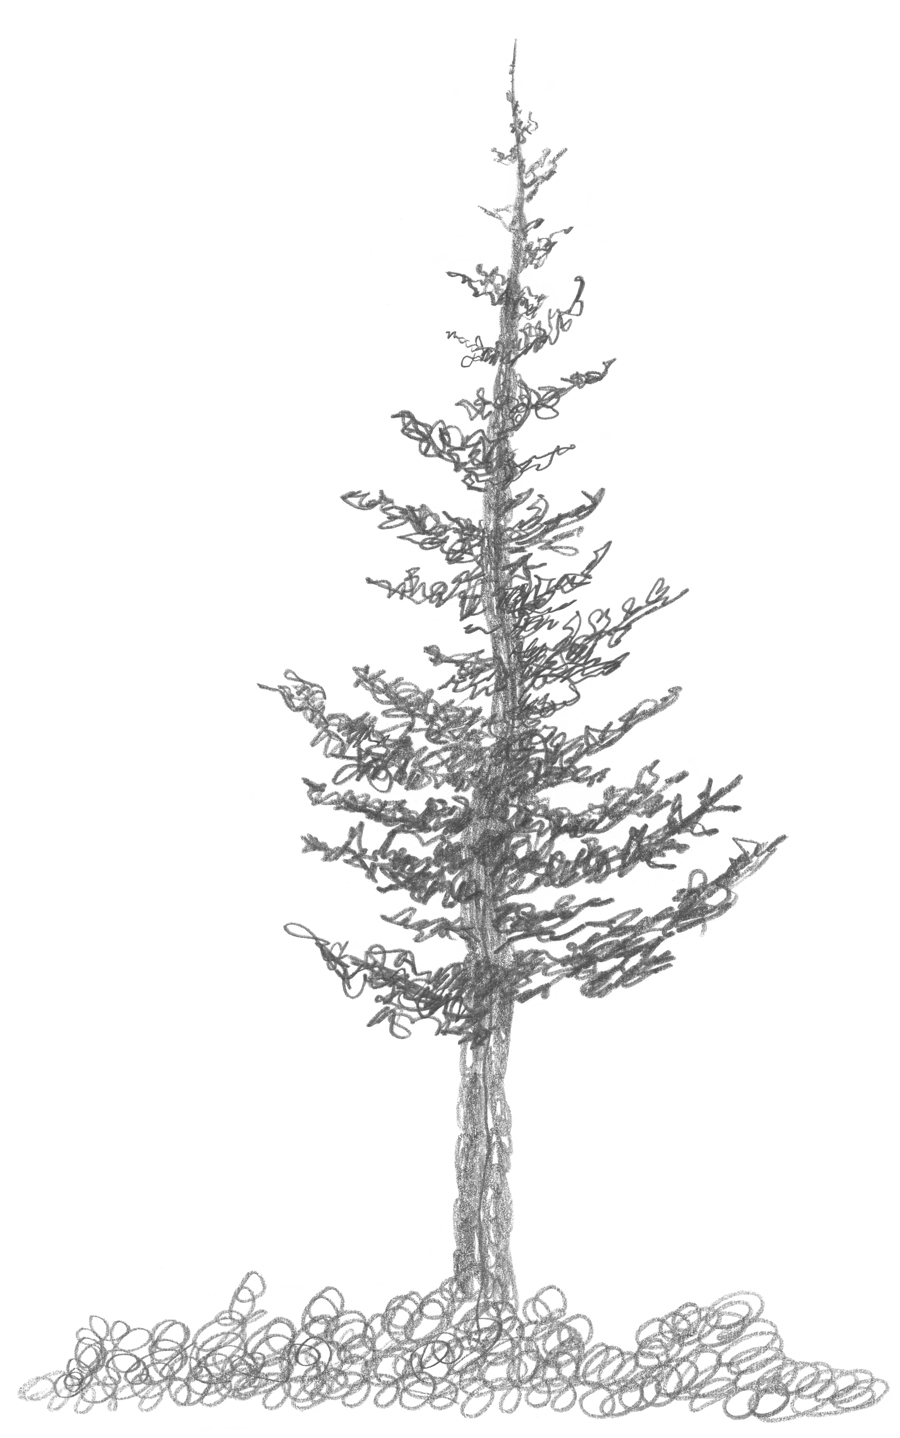 how to draw realistic pine trees realistic pine tree drawing easy to realistic trees draw how pine